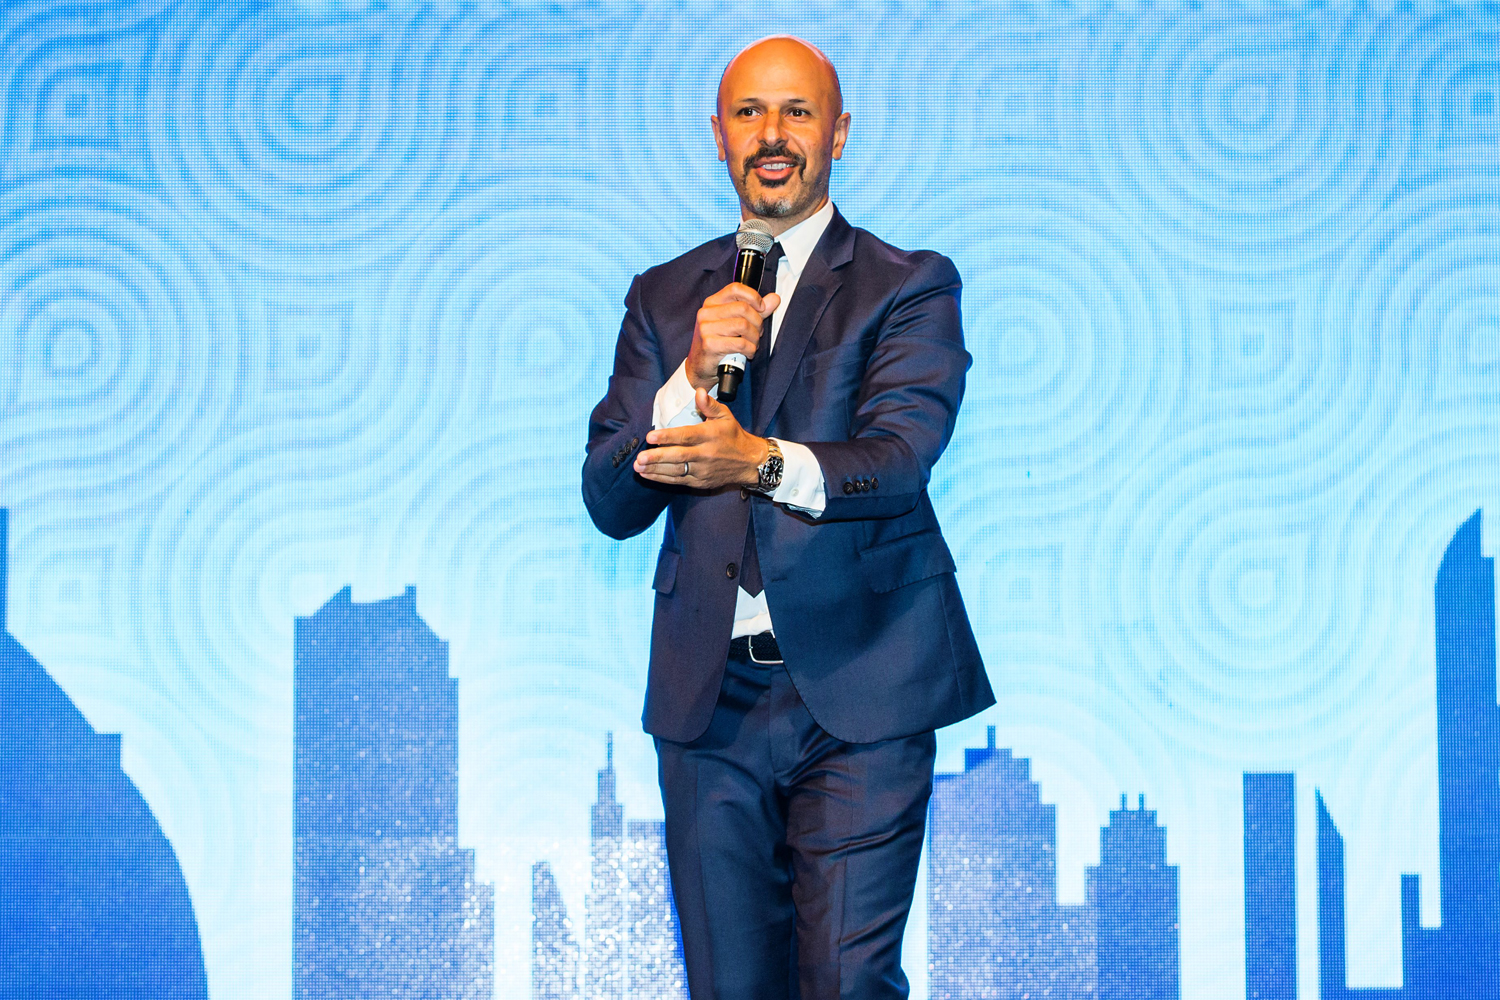 Maz Jobrani Live on Dec 13th at Gate Village, DIFC